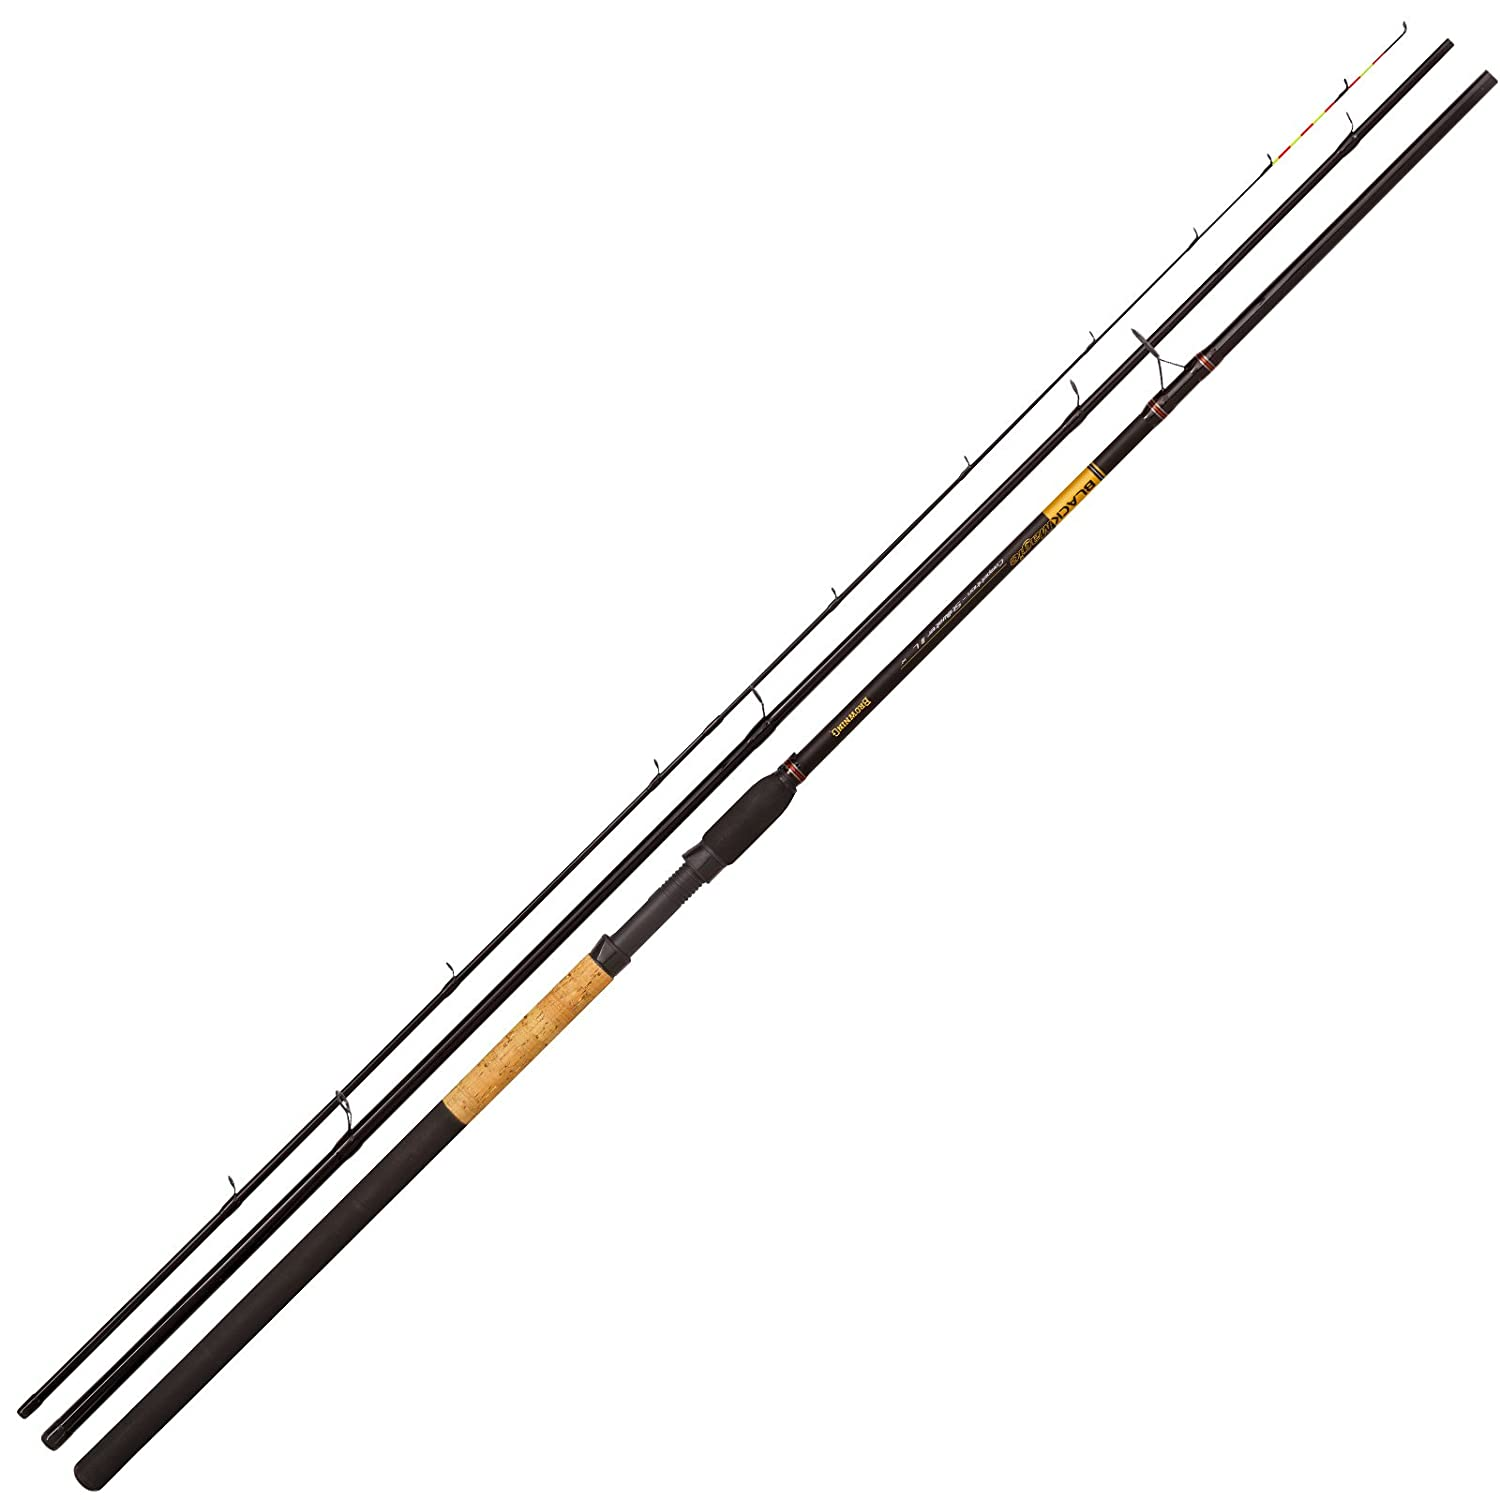 Browning Feederrute Black Magic C-Stillwater L III 3,60m 80g